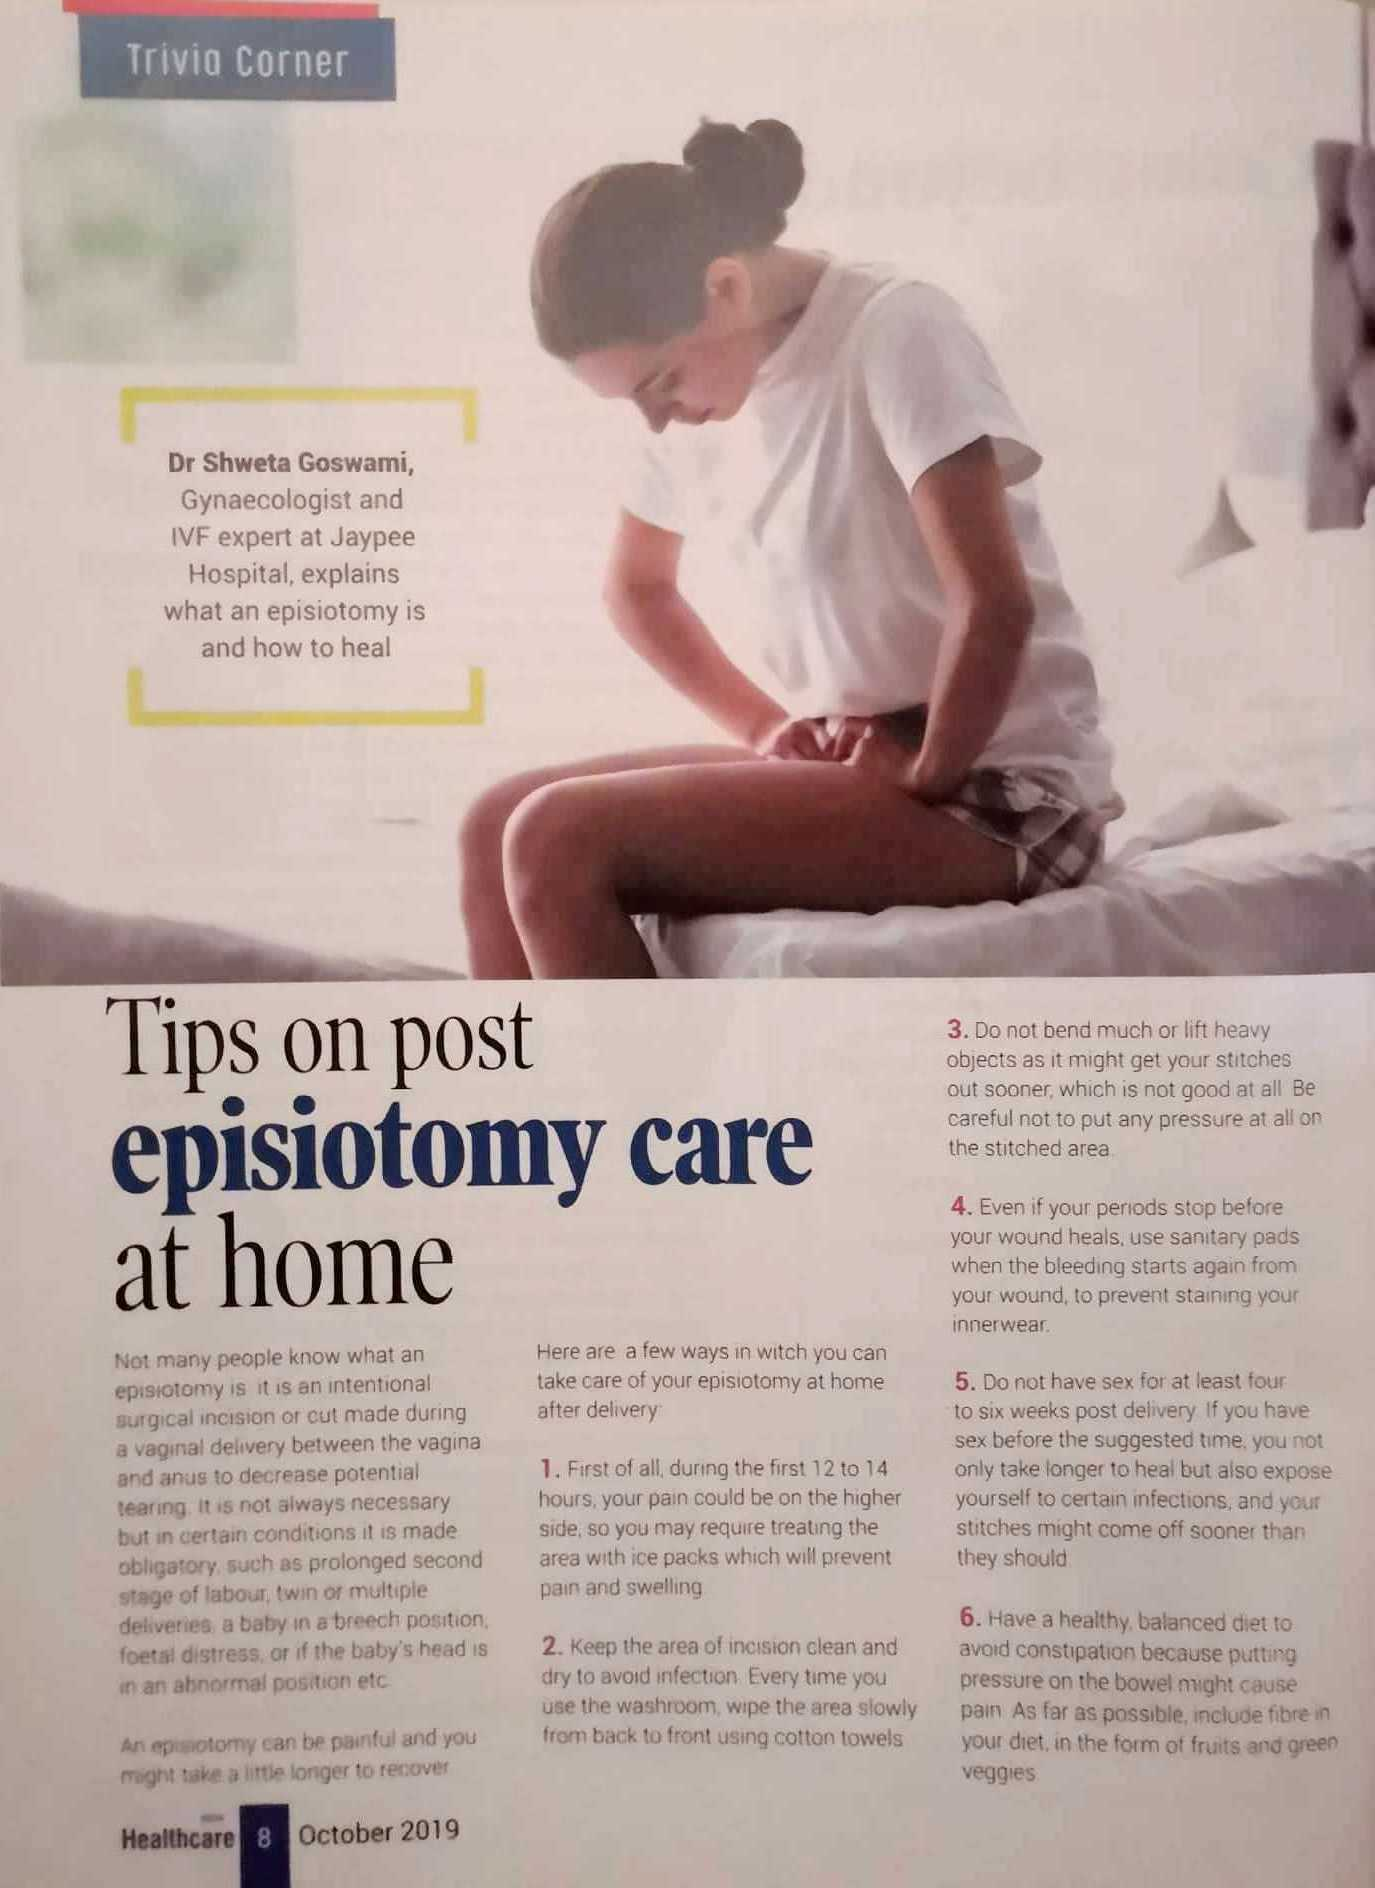 Tips on episiotomy care at home – Trivia Corner